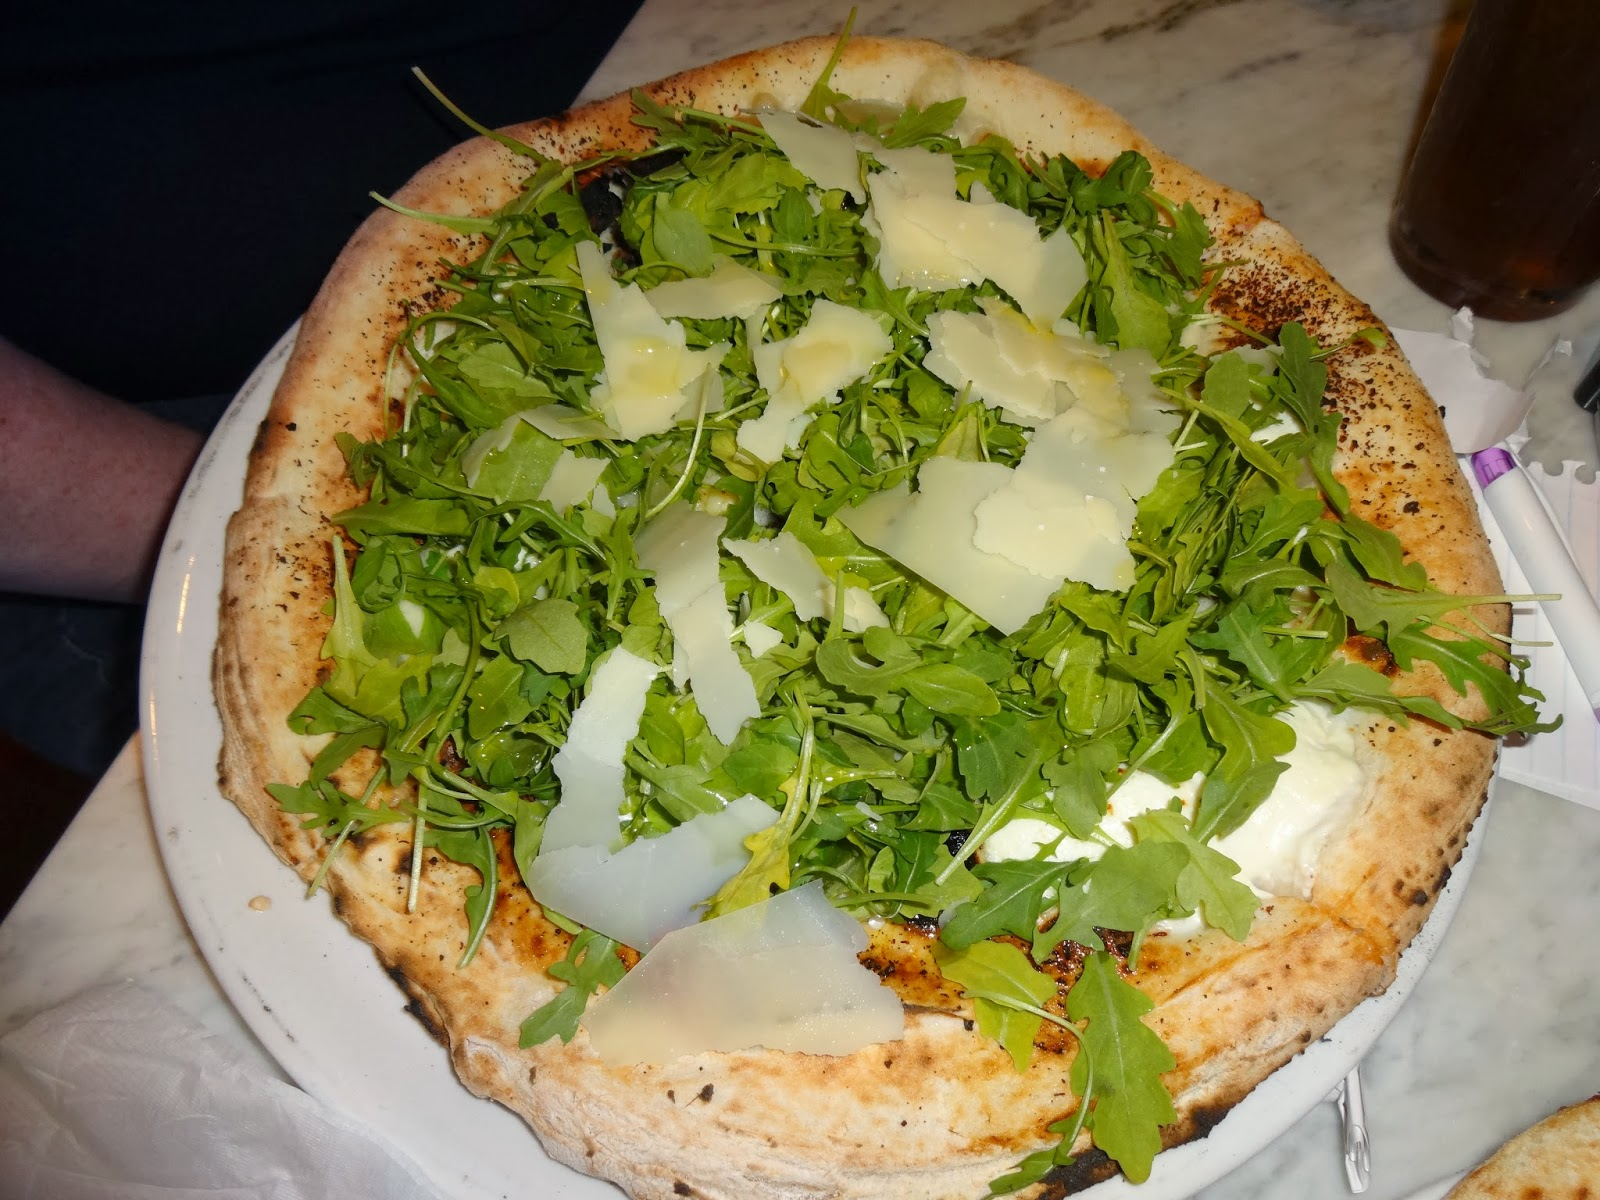 Eating My Way Through OC: Real Deal Pizza in Fullerton?